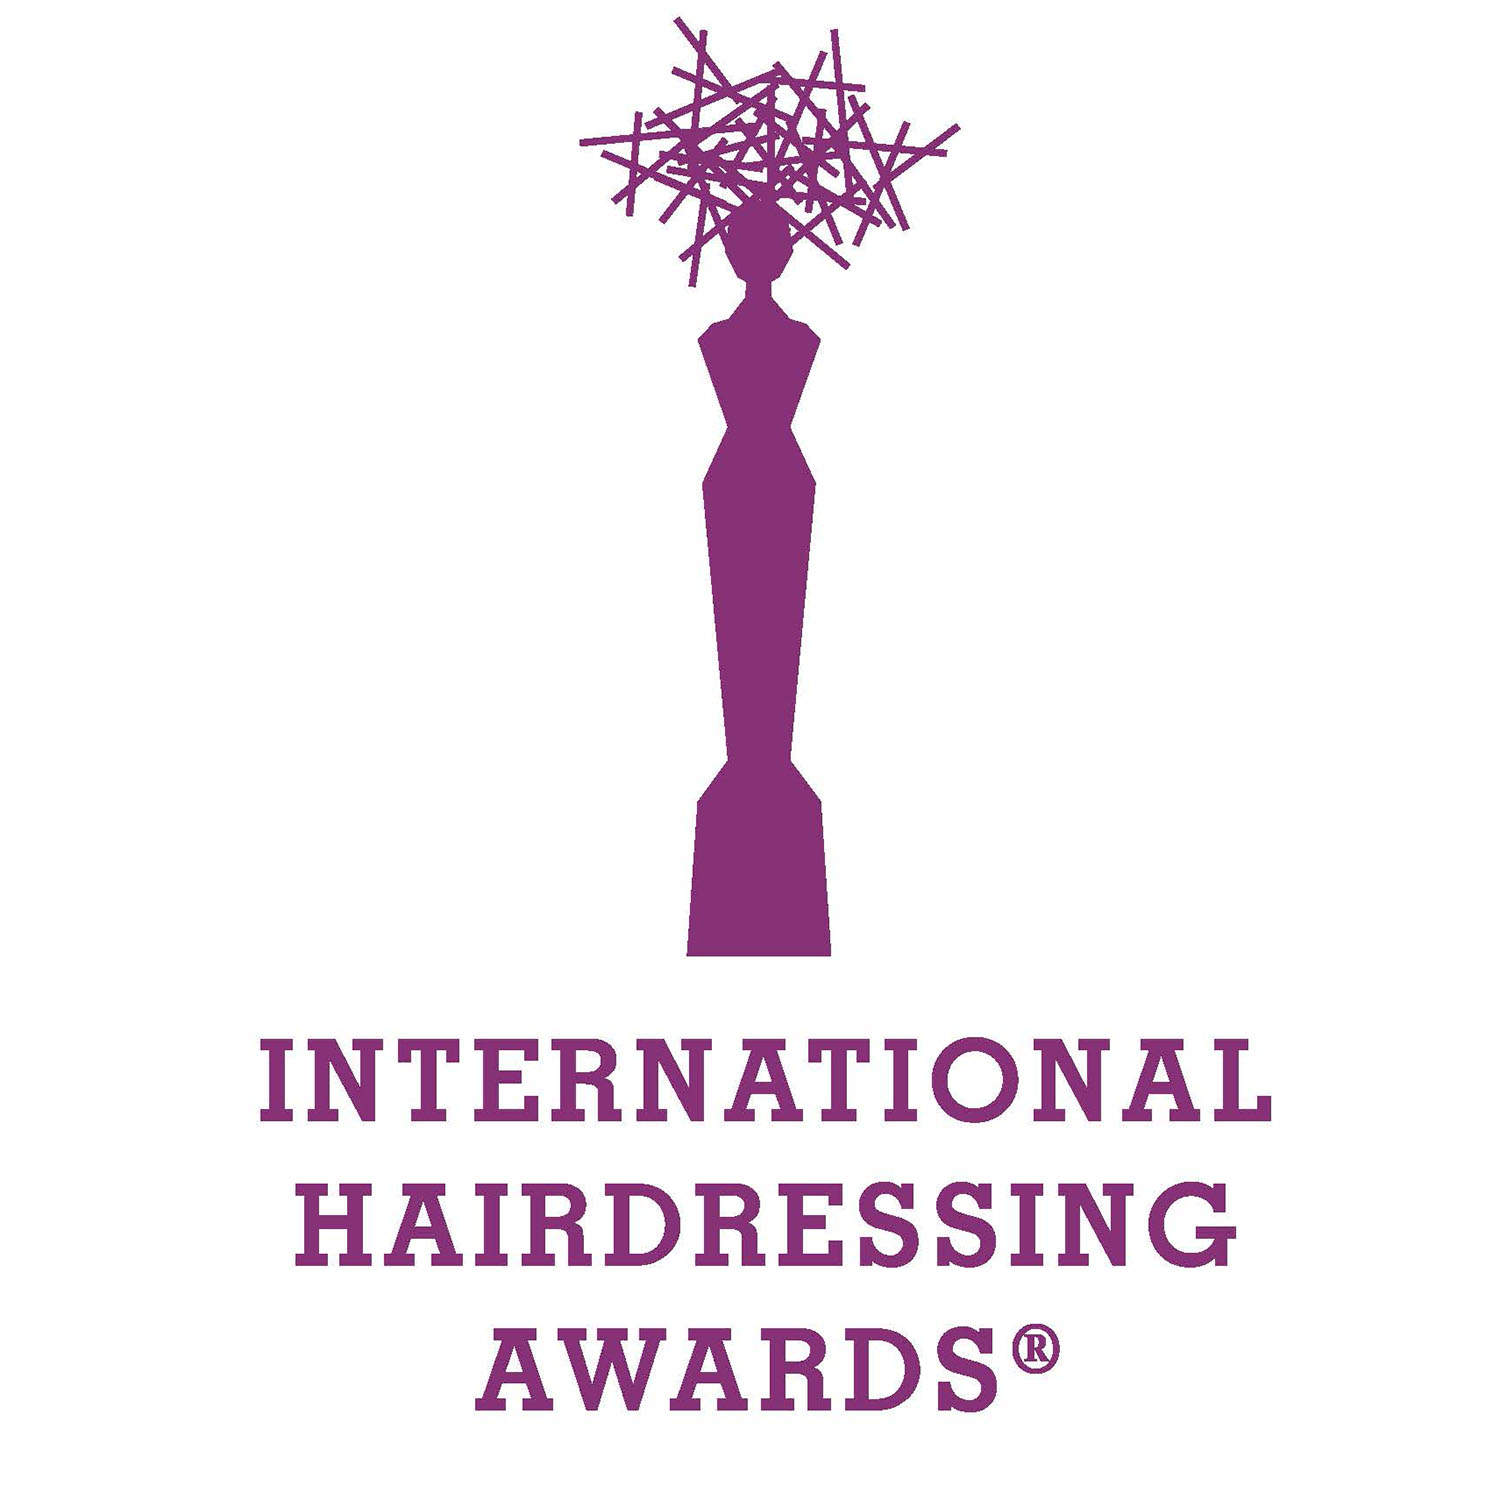 International Hairdressing Awards